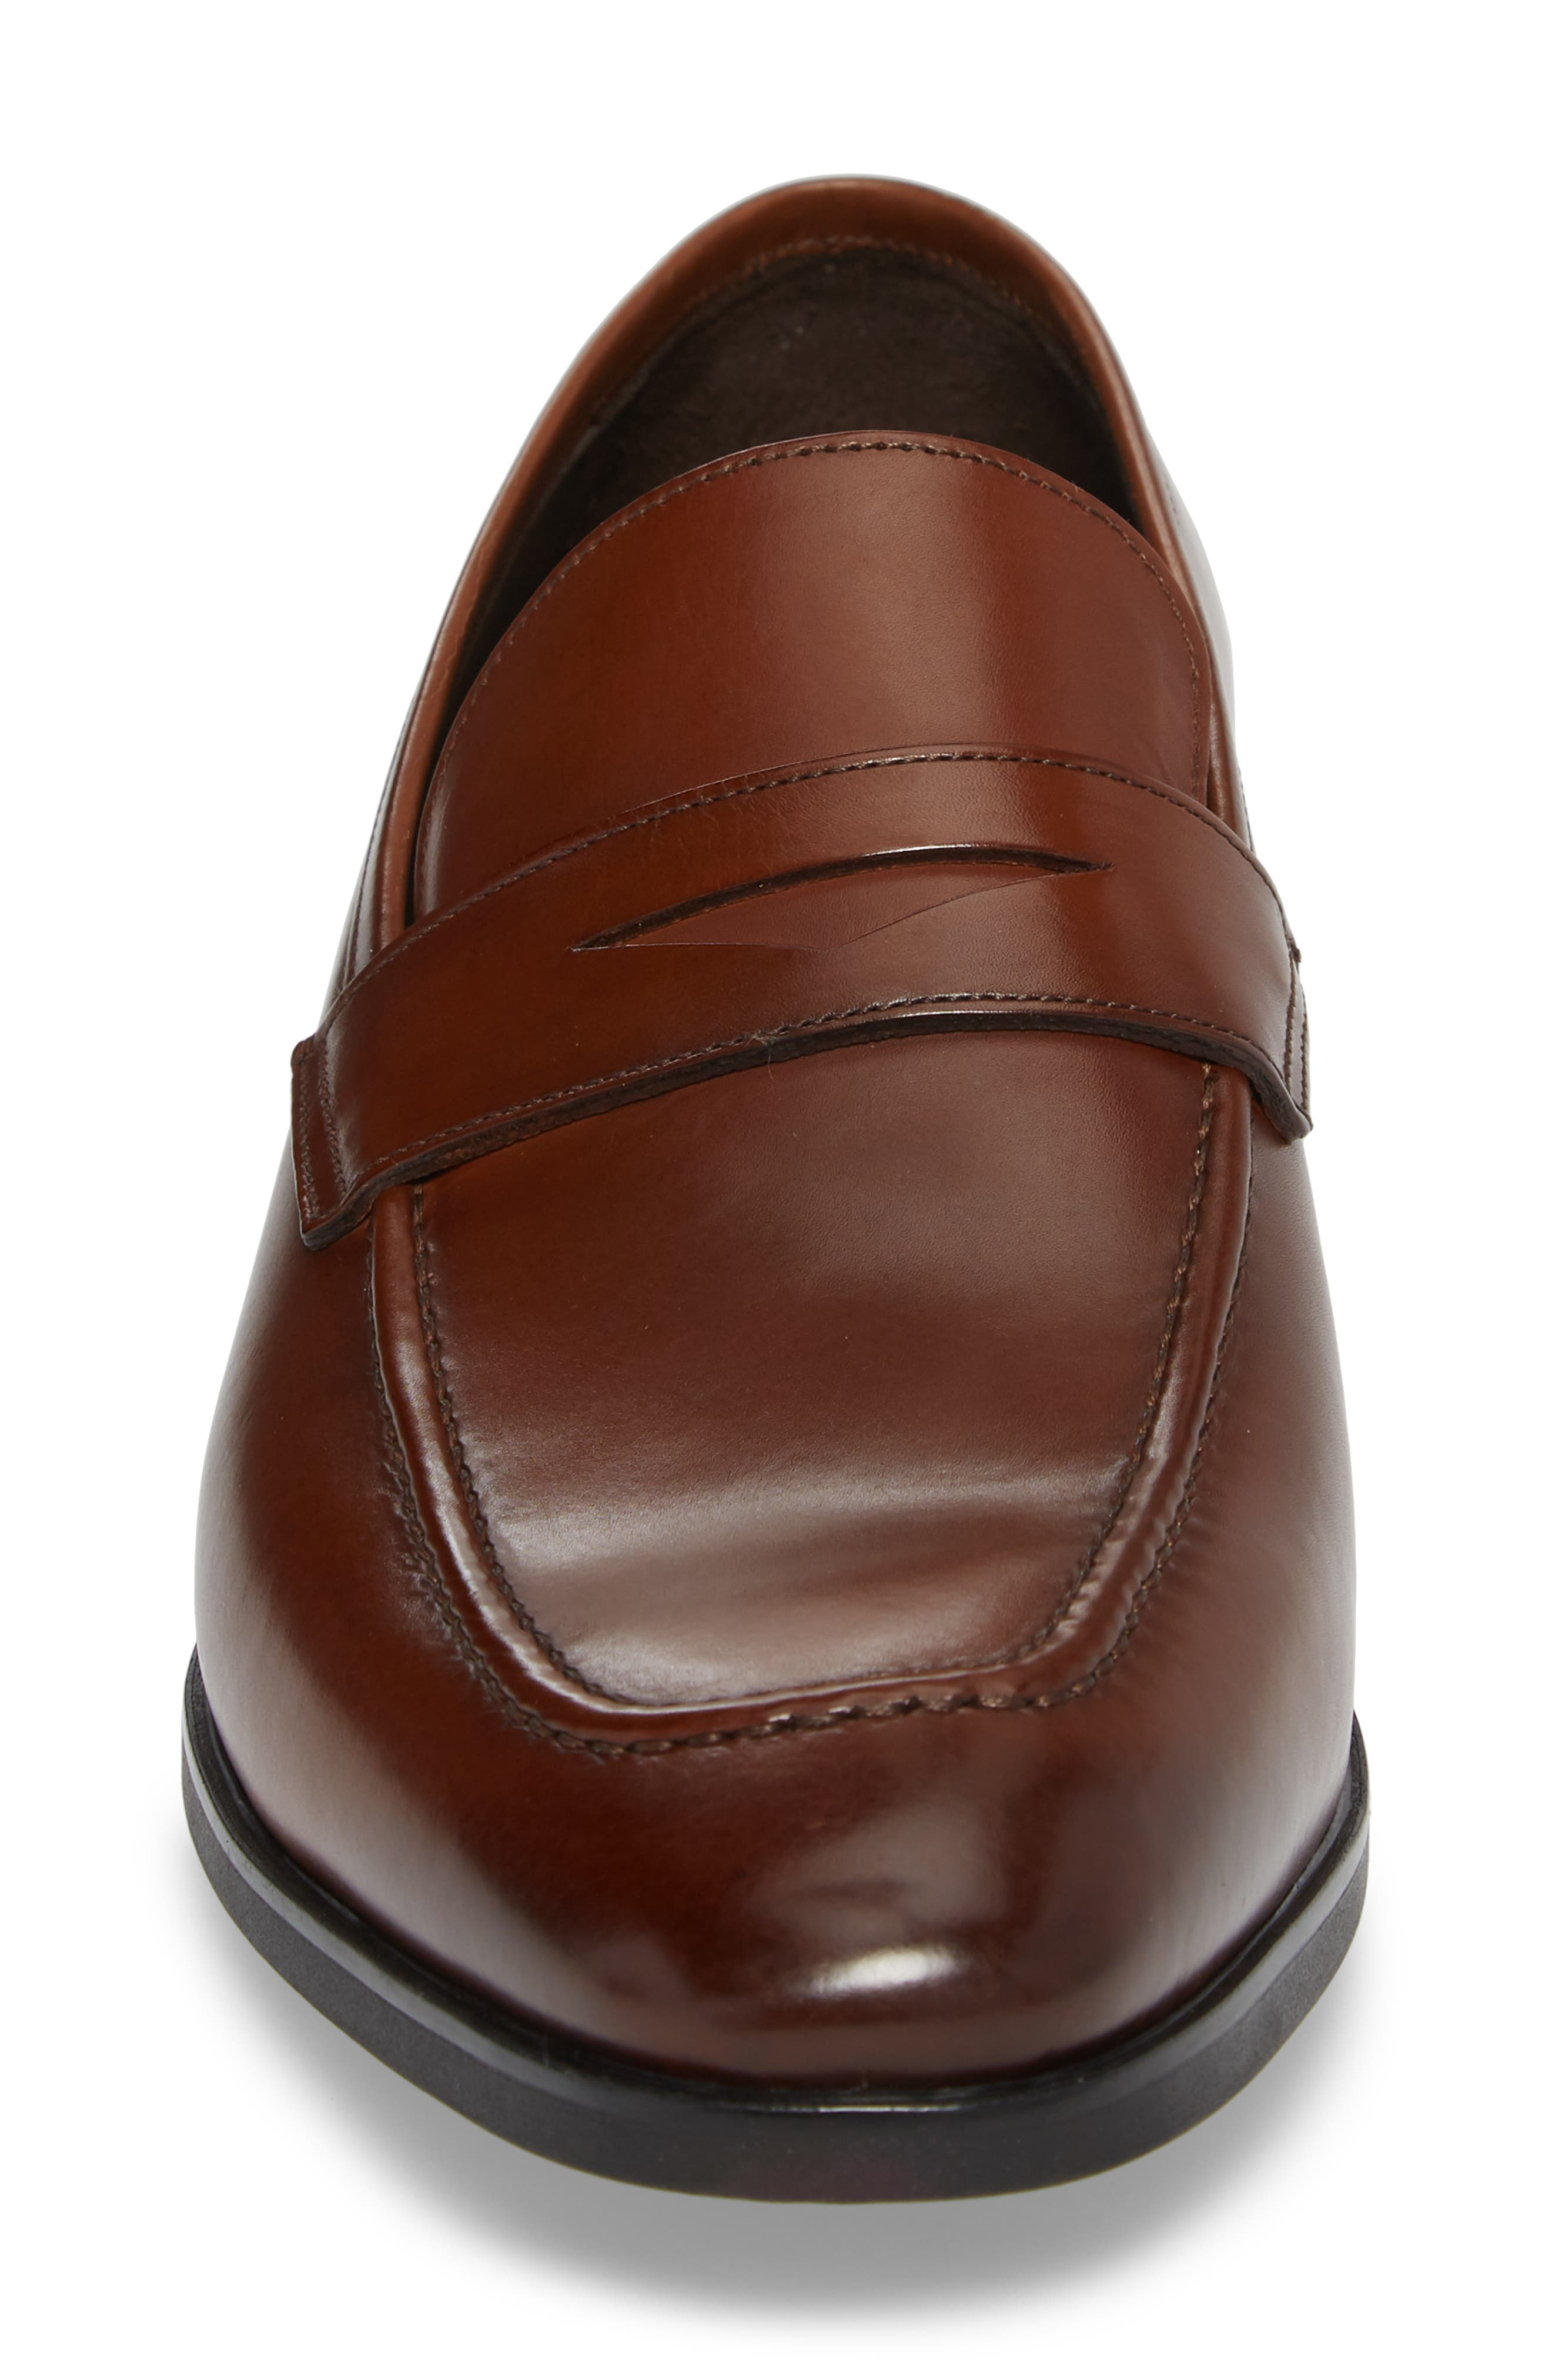 Raleigh Apron Toe Penny Loafer,                             Alternate thumbnail 4, color,                             BROWN LEATHER